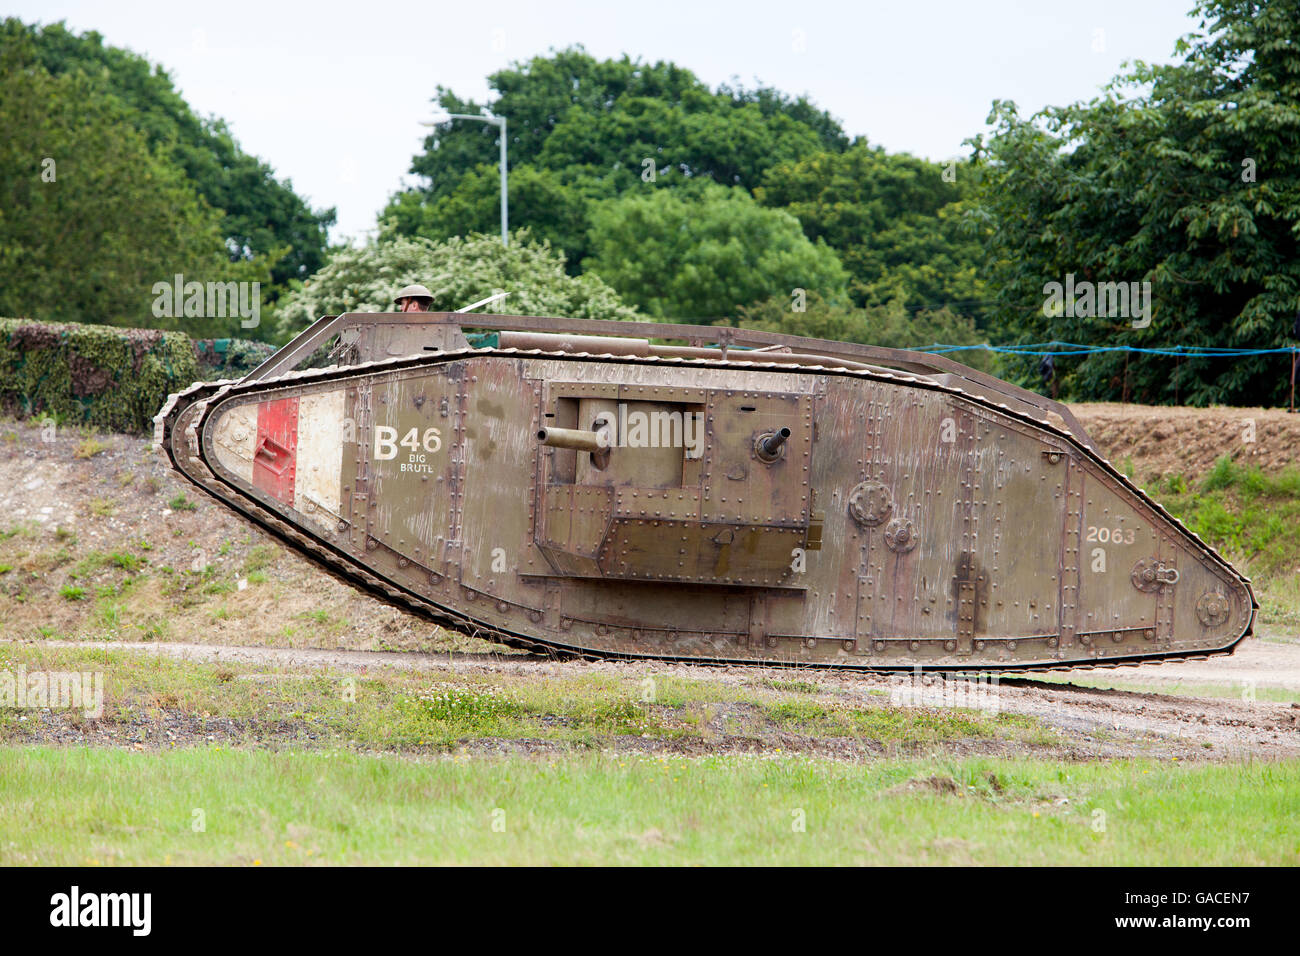 Mark IV Replica World War One Tank at Tankfest 2016 as used in the film War Horse - Stock Image